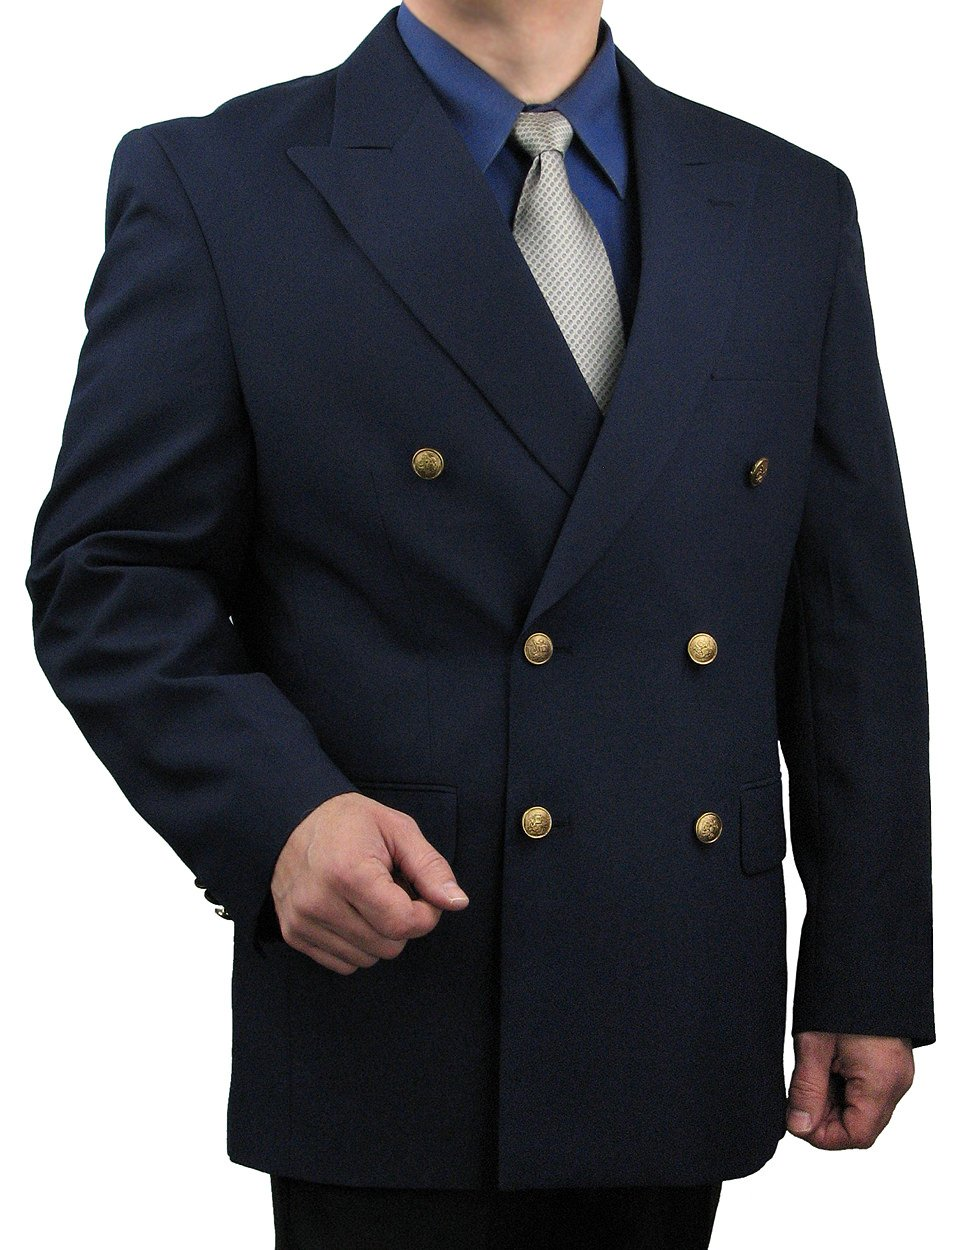 Triple Blessings Men's Classic Fit Double-Breasted Blazer Jacket Sports Coat w/One Pair Of Dress Socks - Navy 46R by Triple Blessings (Image #4)